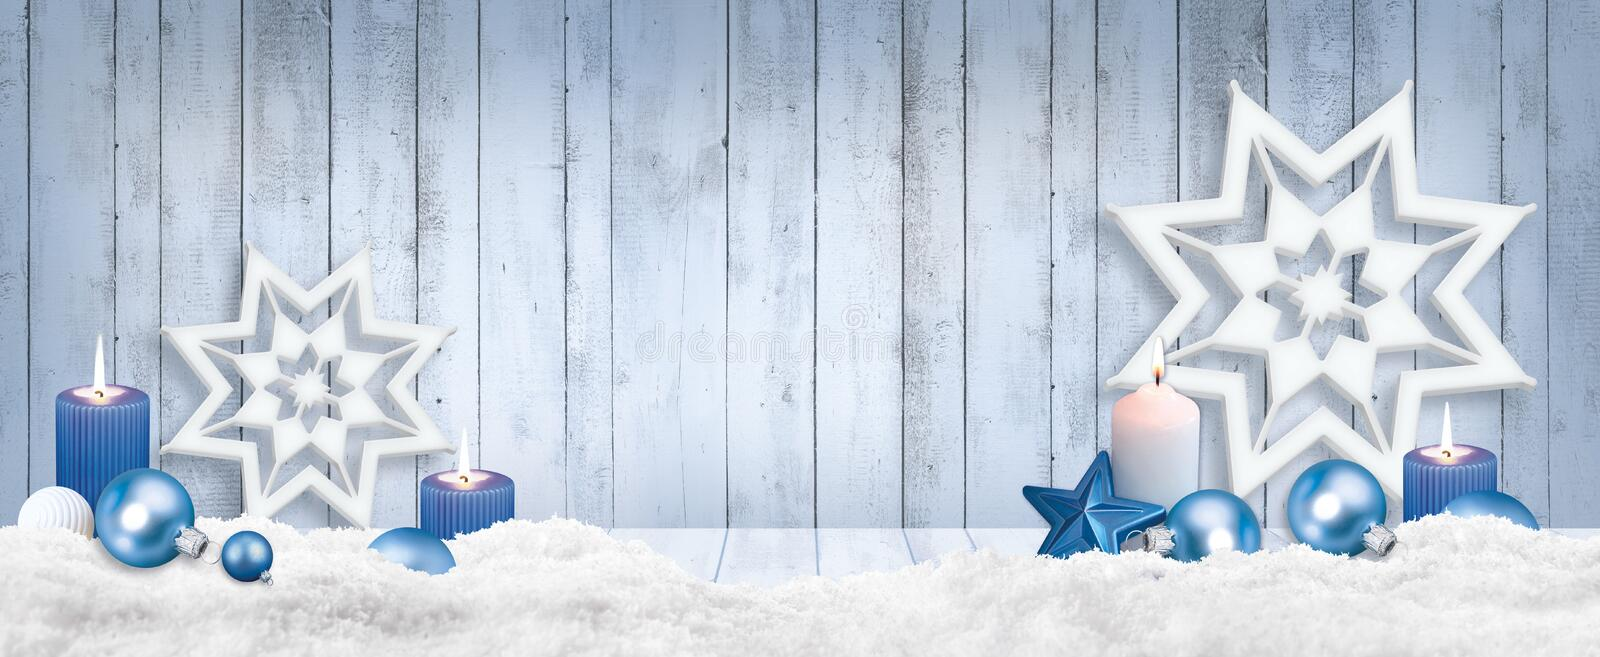 Christmas background for photo studio with wooden table and backdrop. Balls, snowflakes stock images